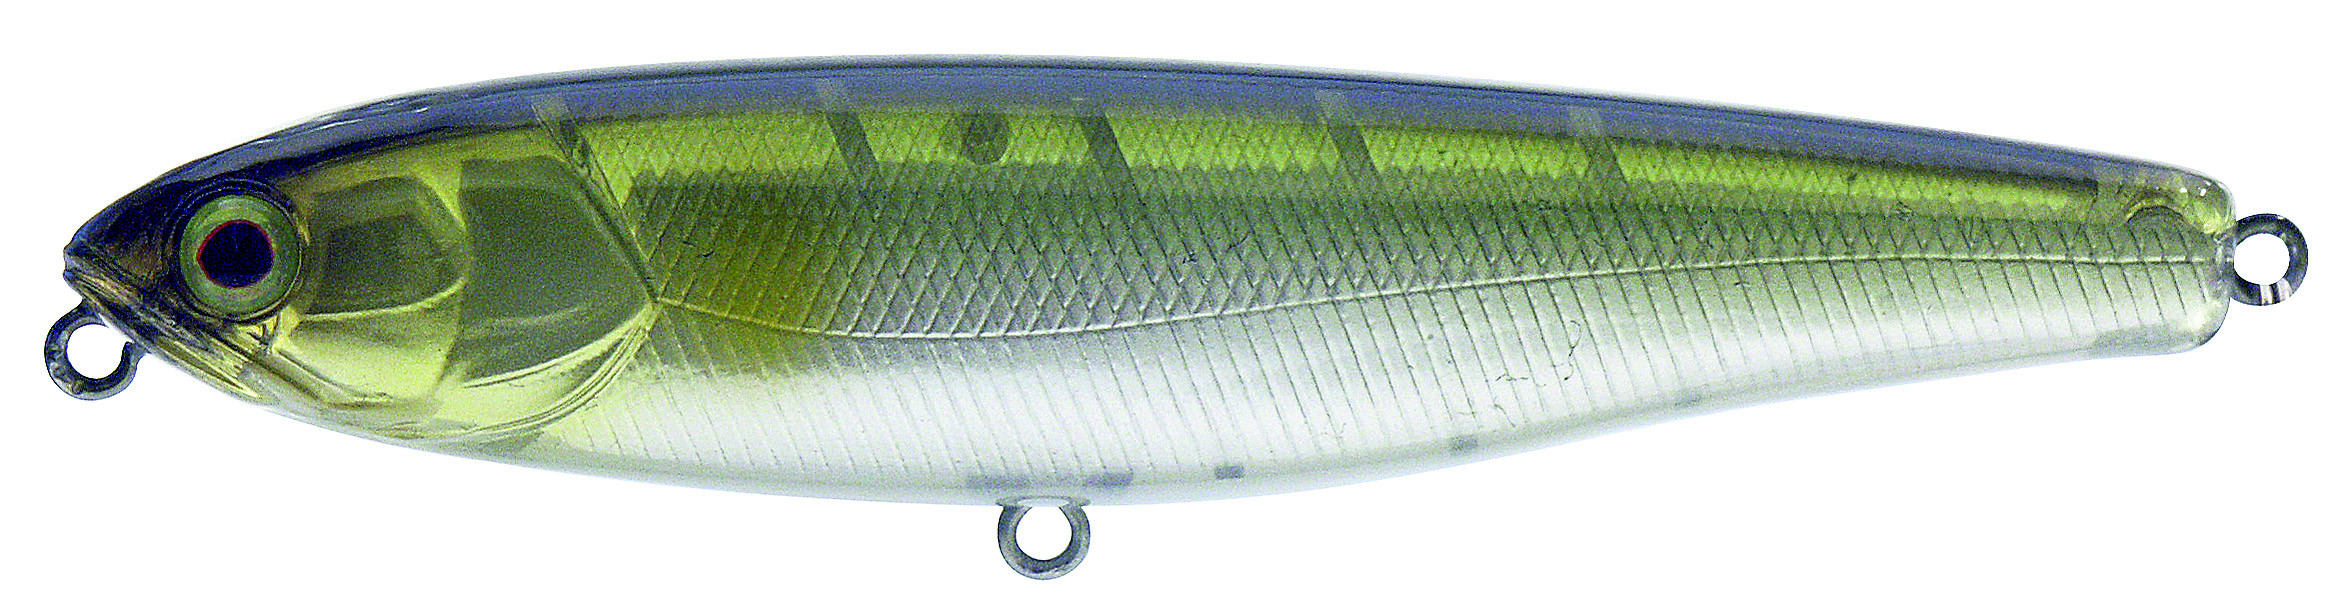 STICKBAIT ILLEX WATER MONITOR 85 MM